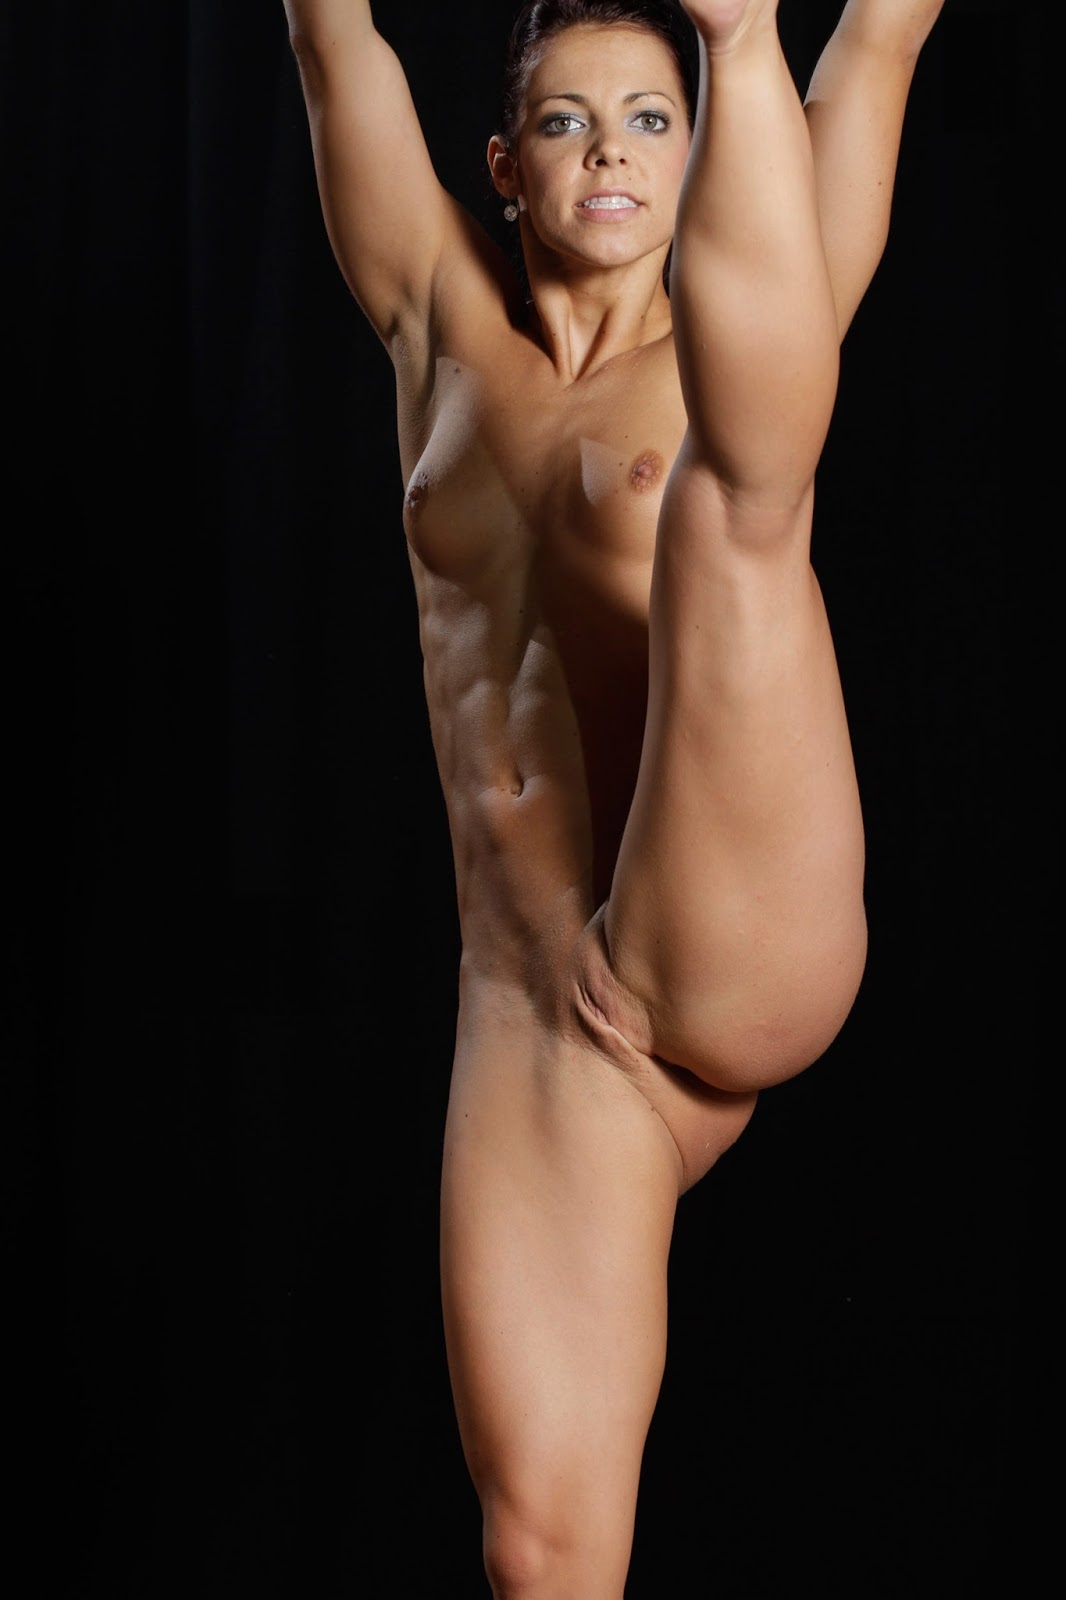 Naked Women Doing Gymnastics